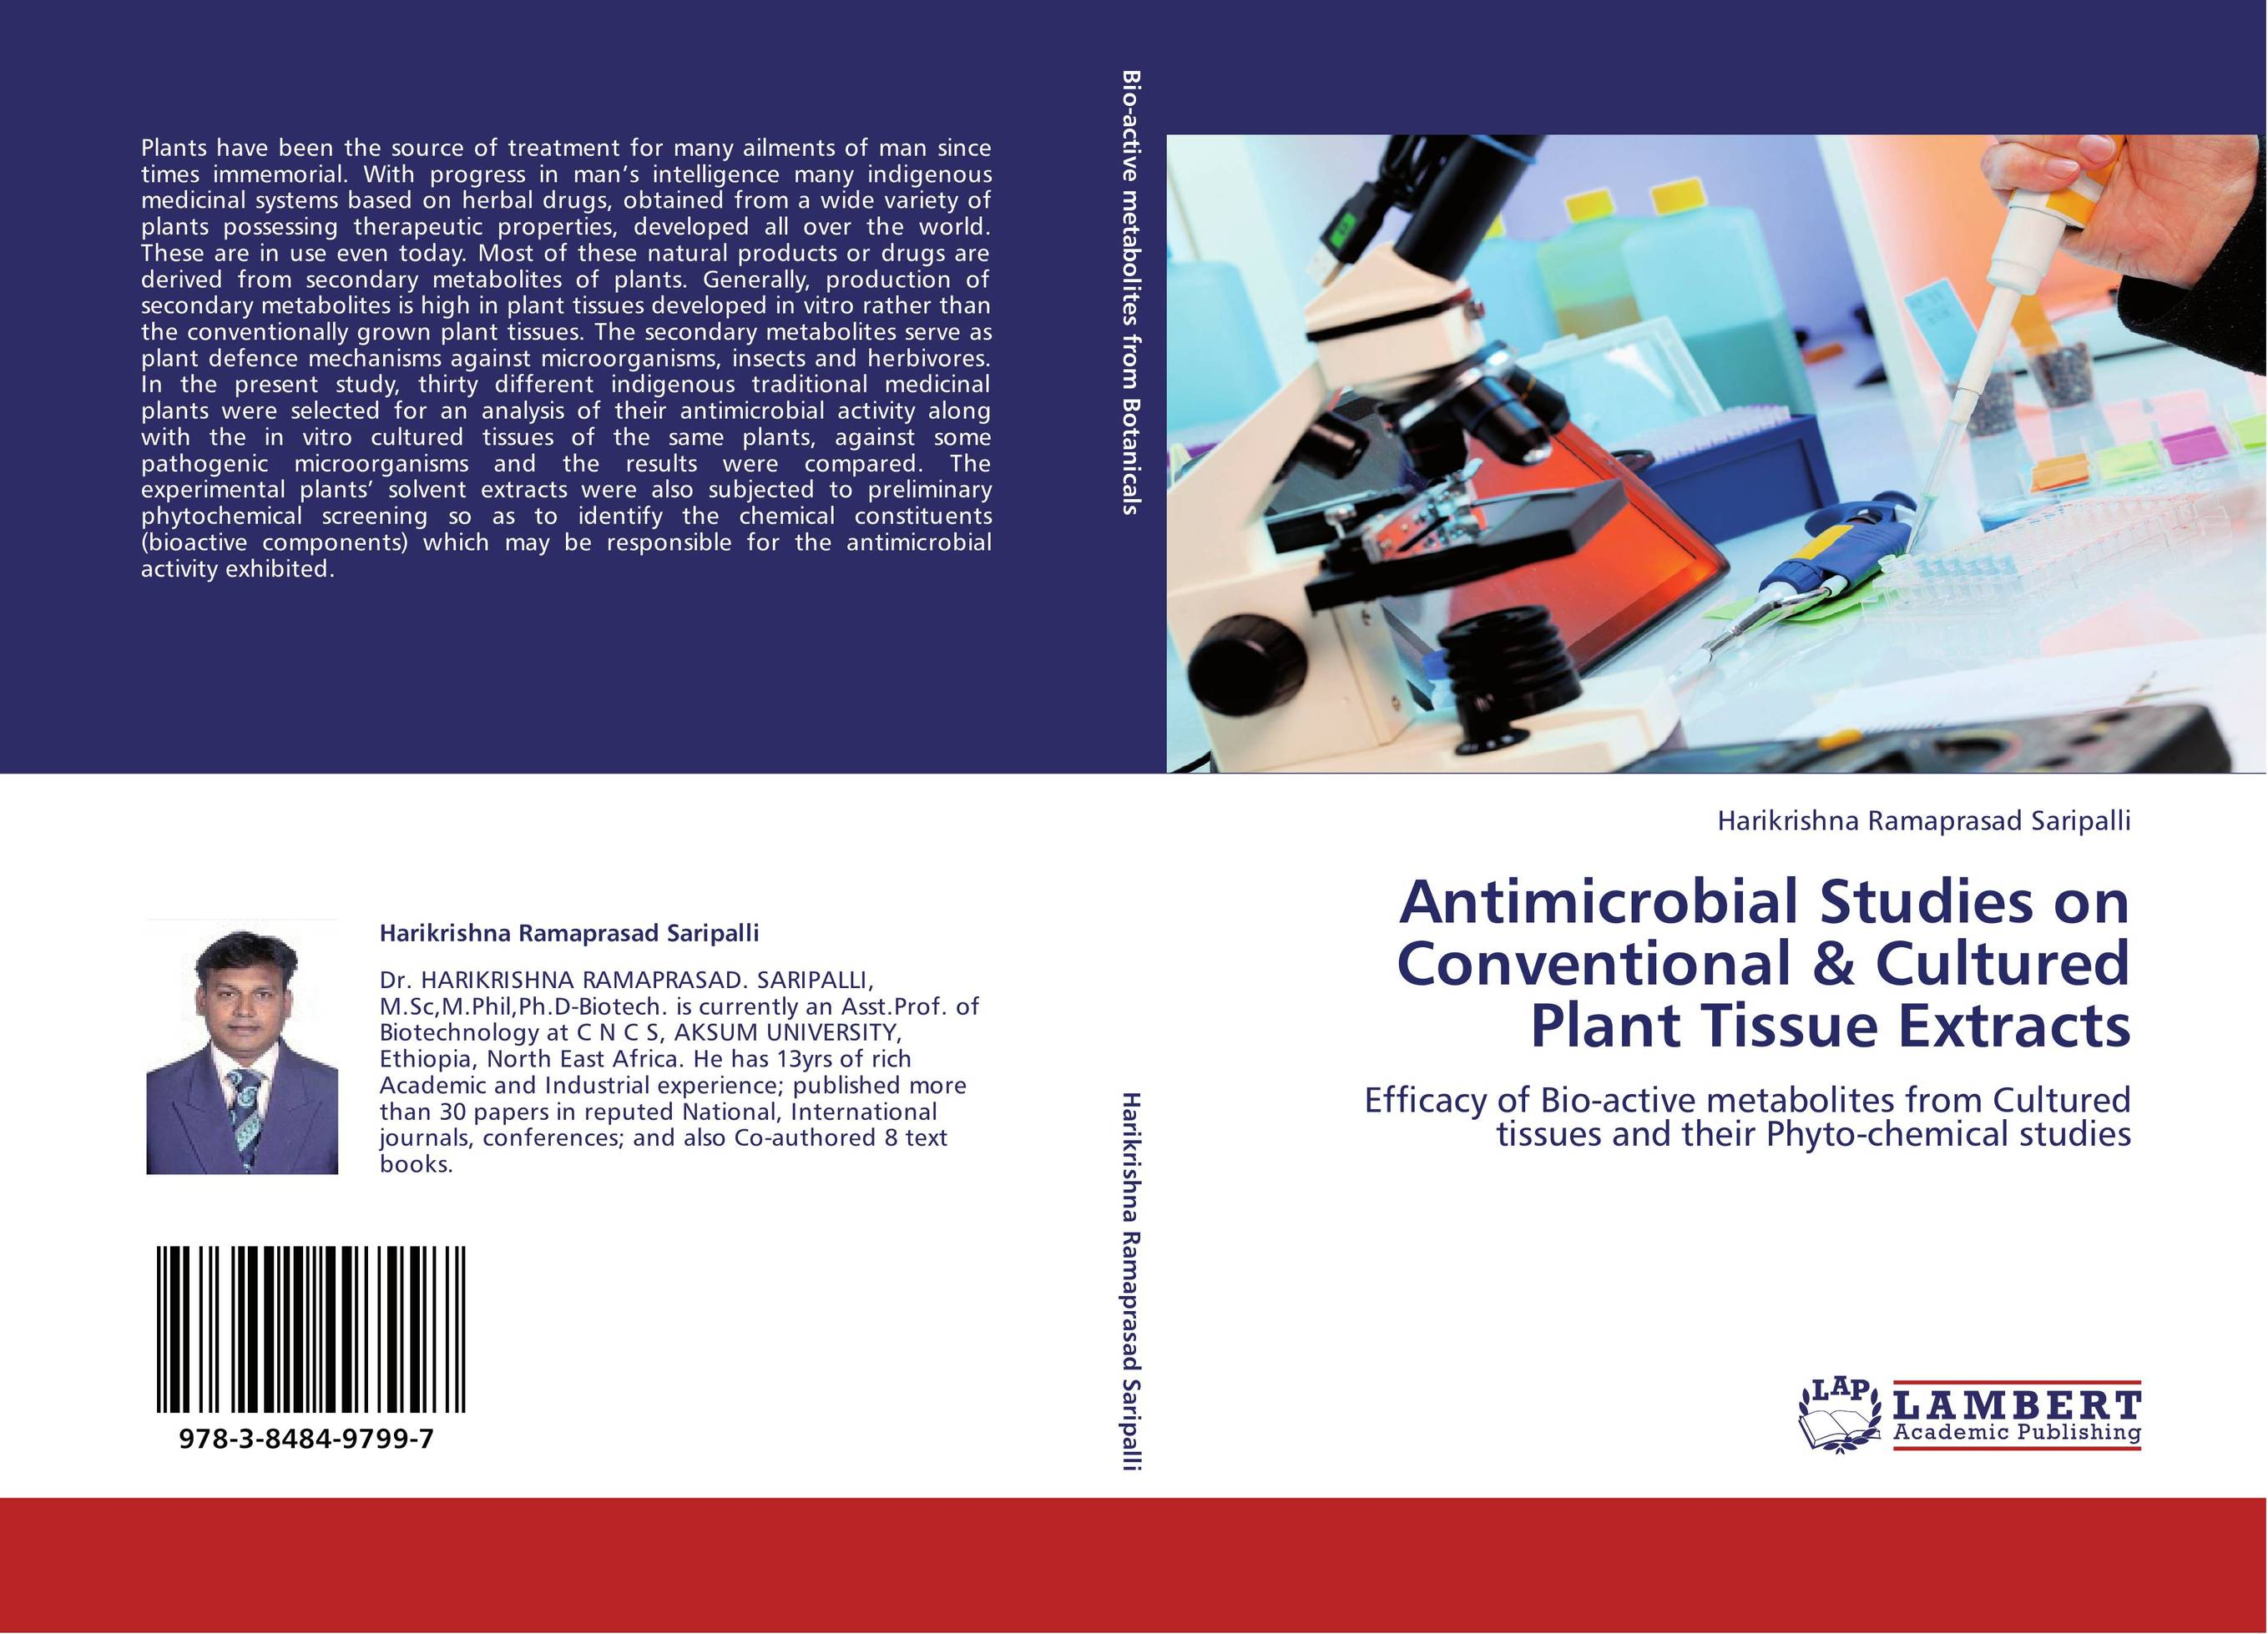 tissue culture studies in pecan biology essay The lewis films: tissue culture and 'living anatomy', 1919-1940, 117-144 in centennial history of the carnegie institute department of embryology, jane maienschein, marie glitz and garland allan (eds), cambridge university press, 2004.